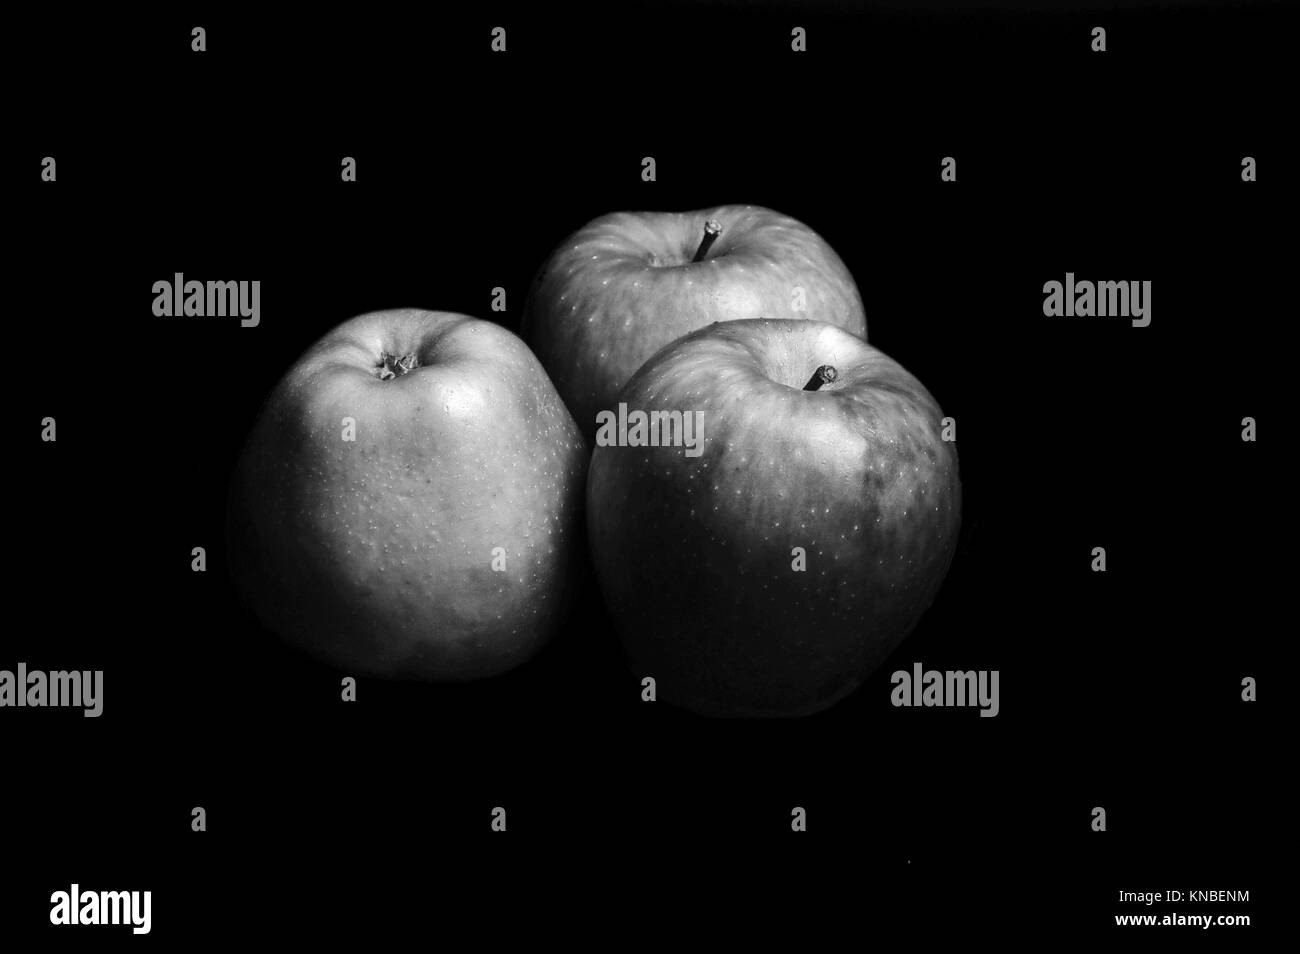 trhee apples with black and white, fruit. - Stock Image